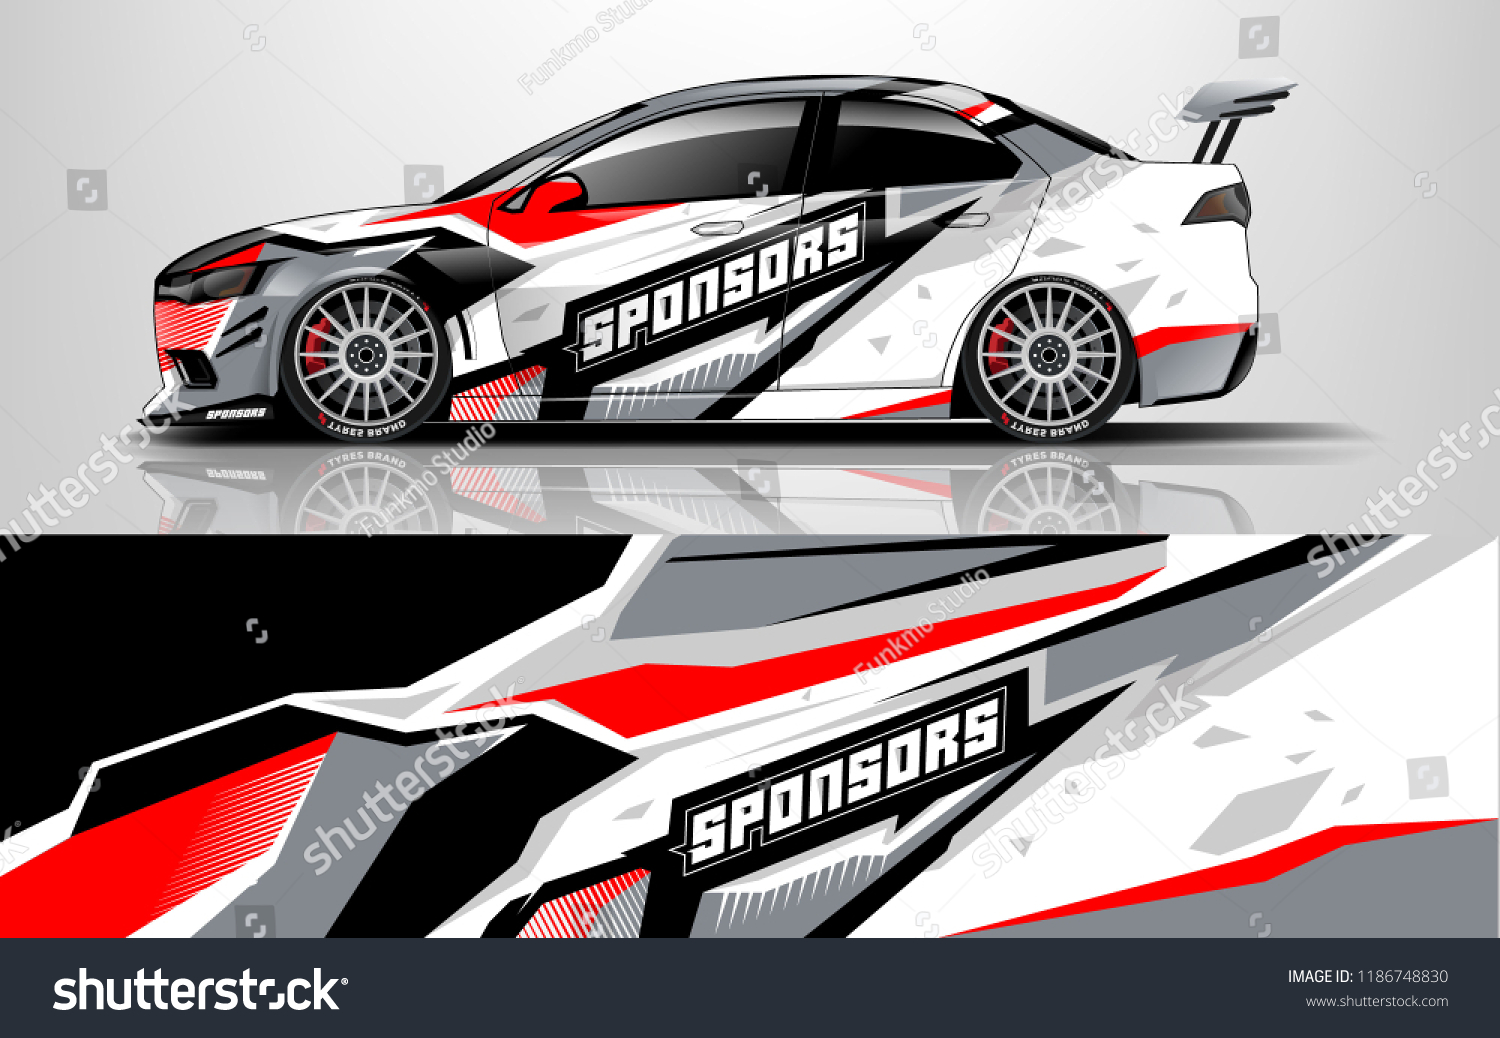 Design Race Vehicle Vector Advertising Design Stock Vector Royalty